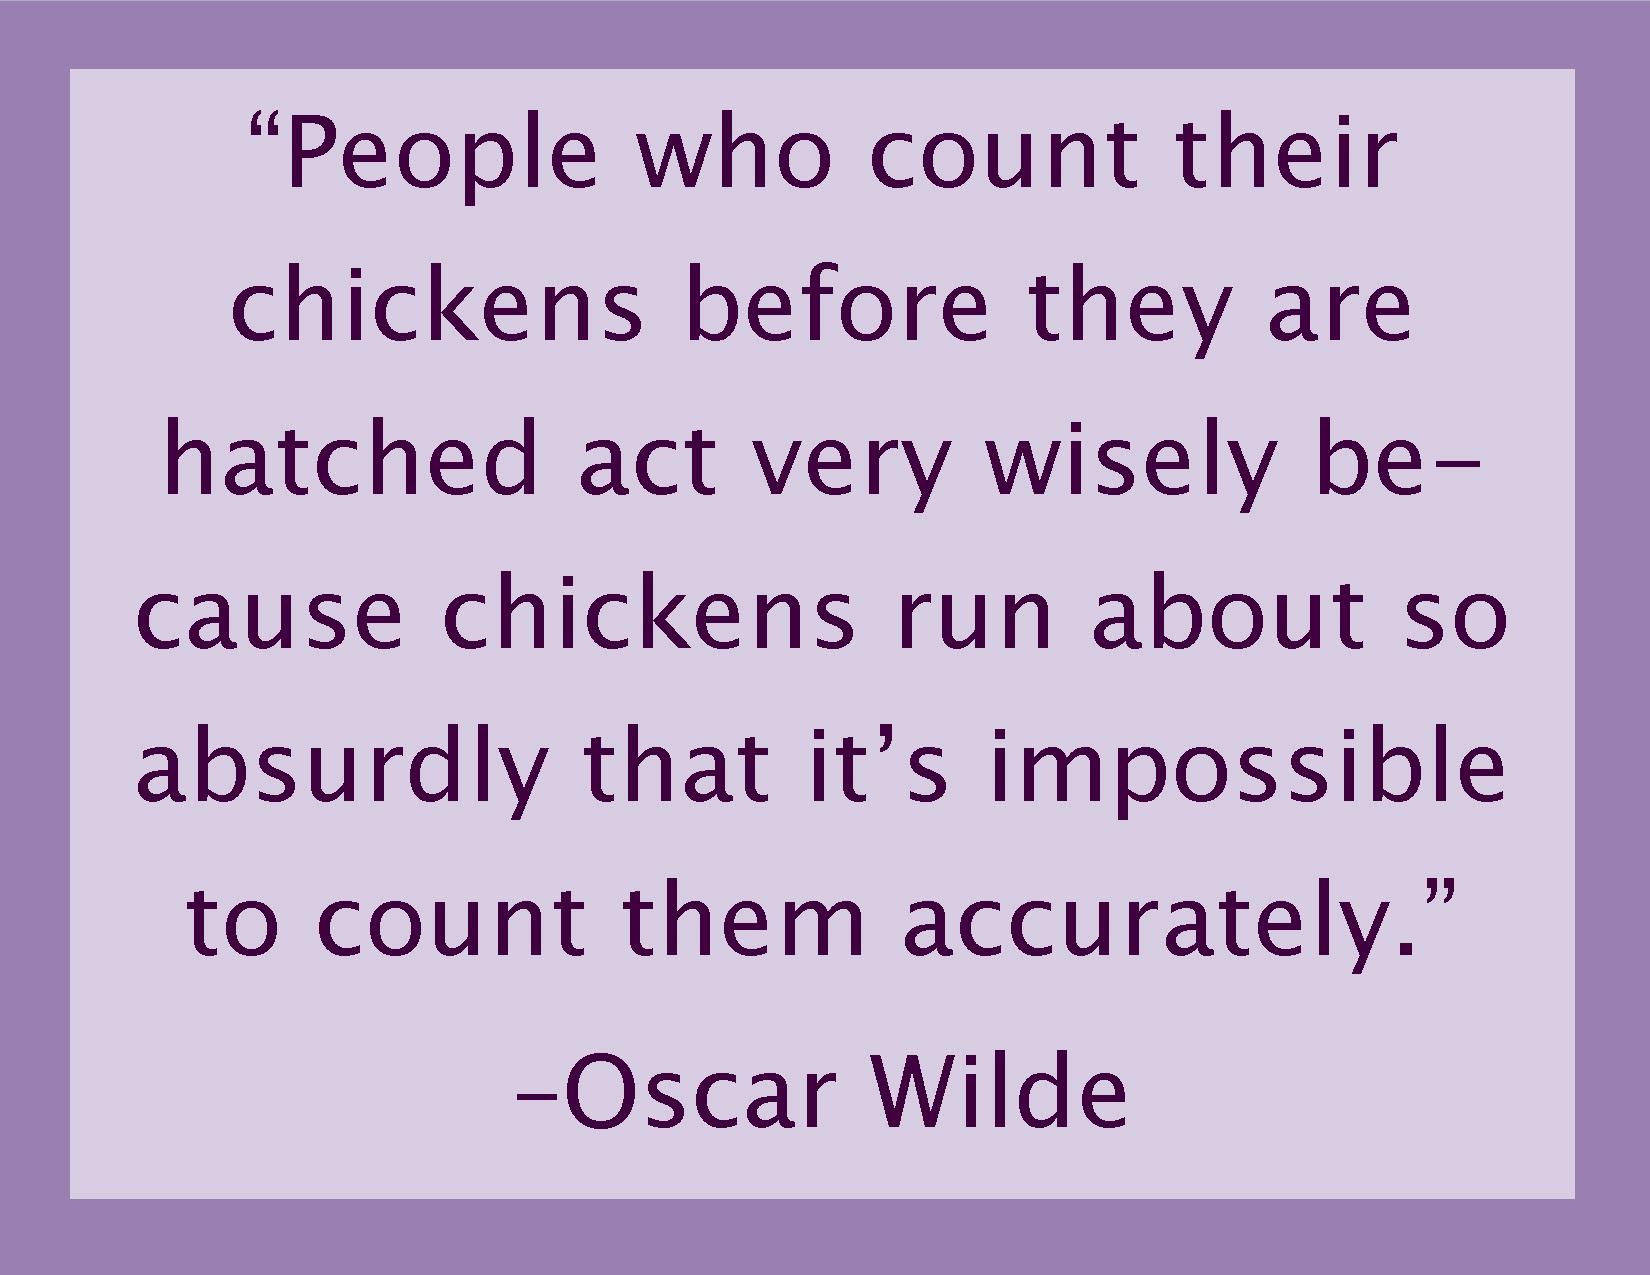 Quotes About Raising Chickens: Counting Running Chickens